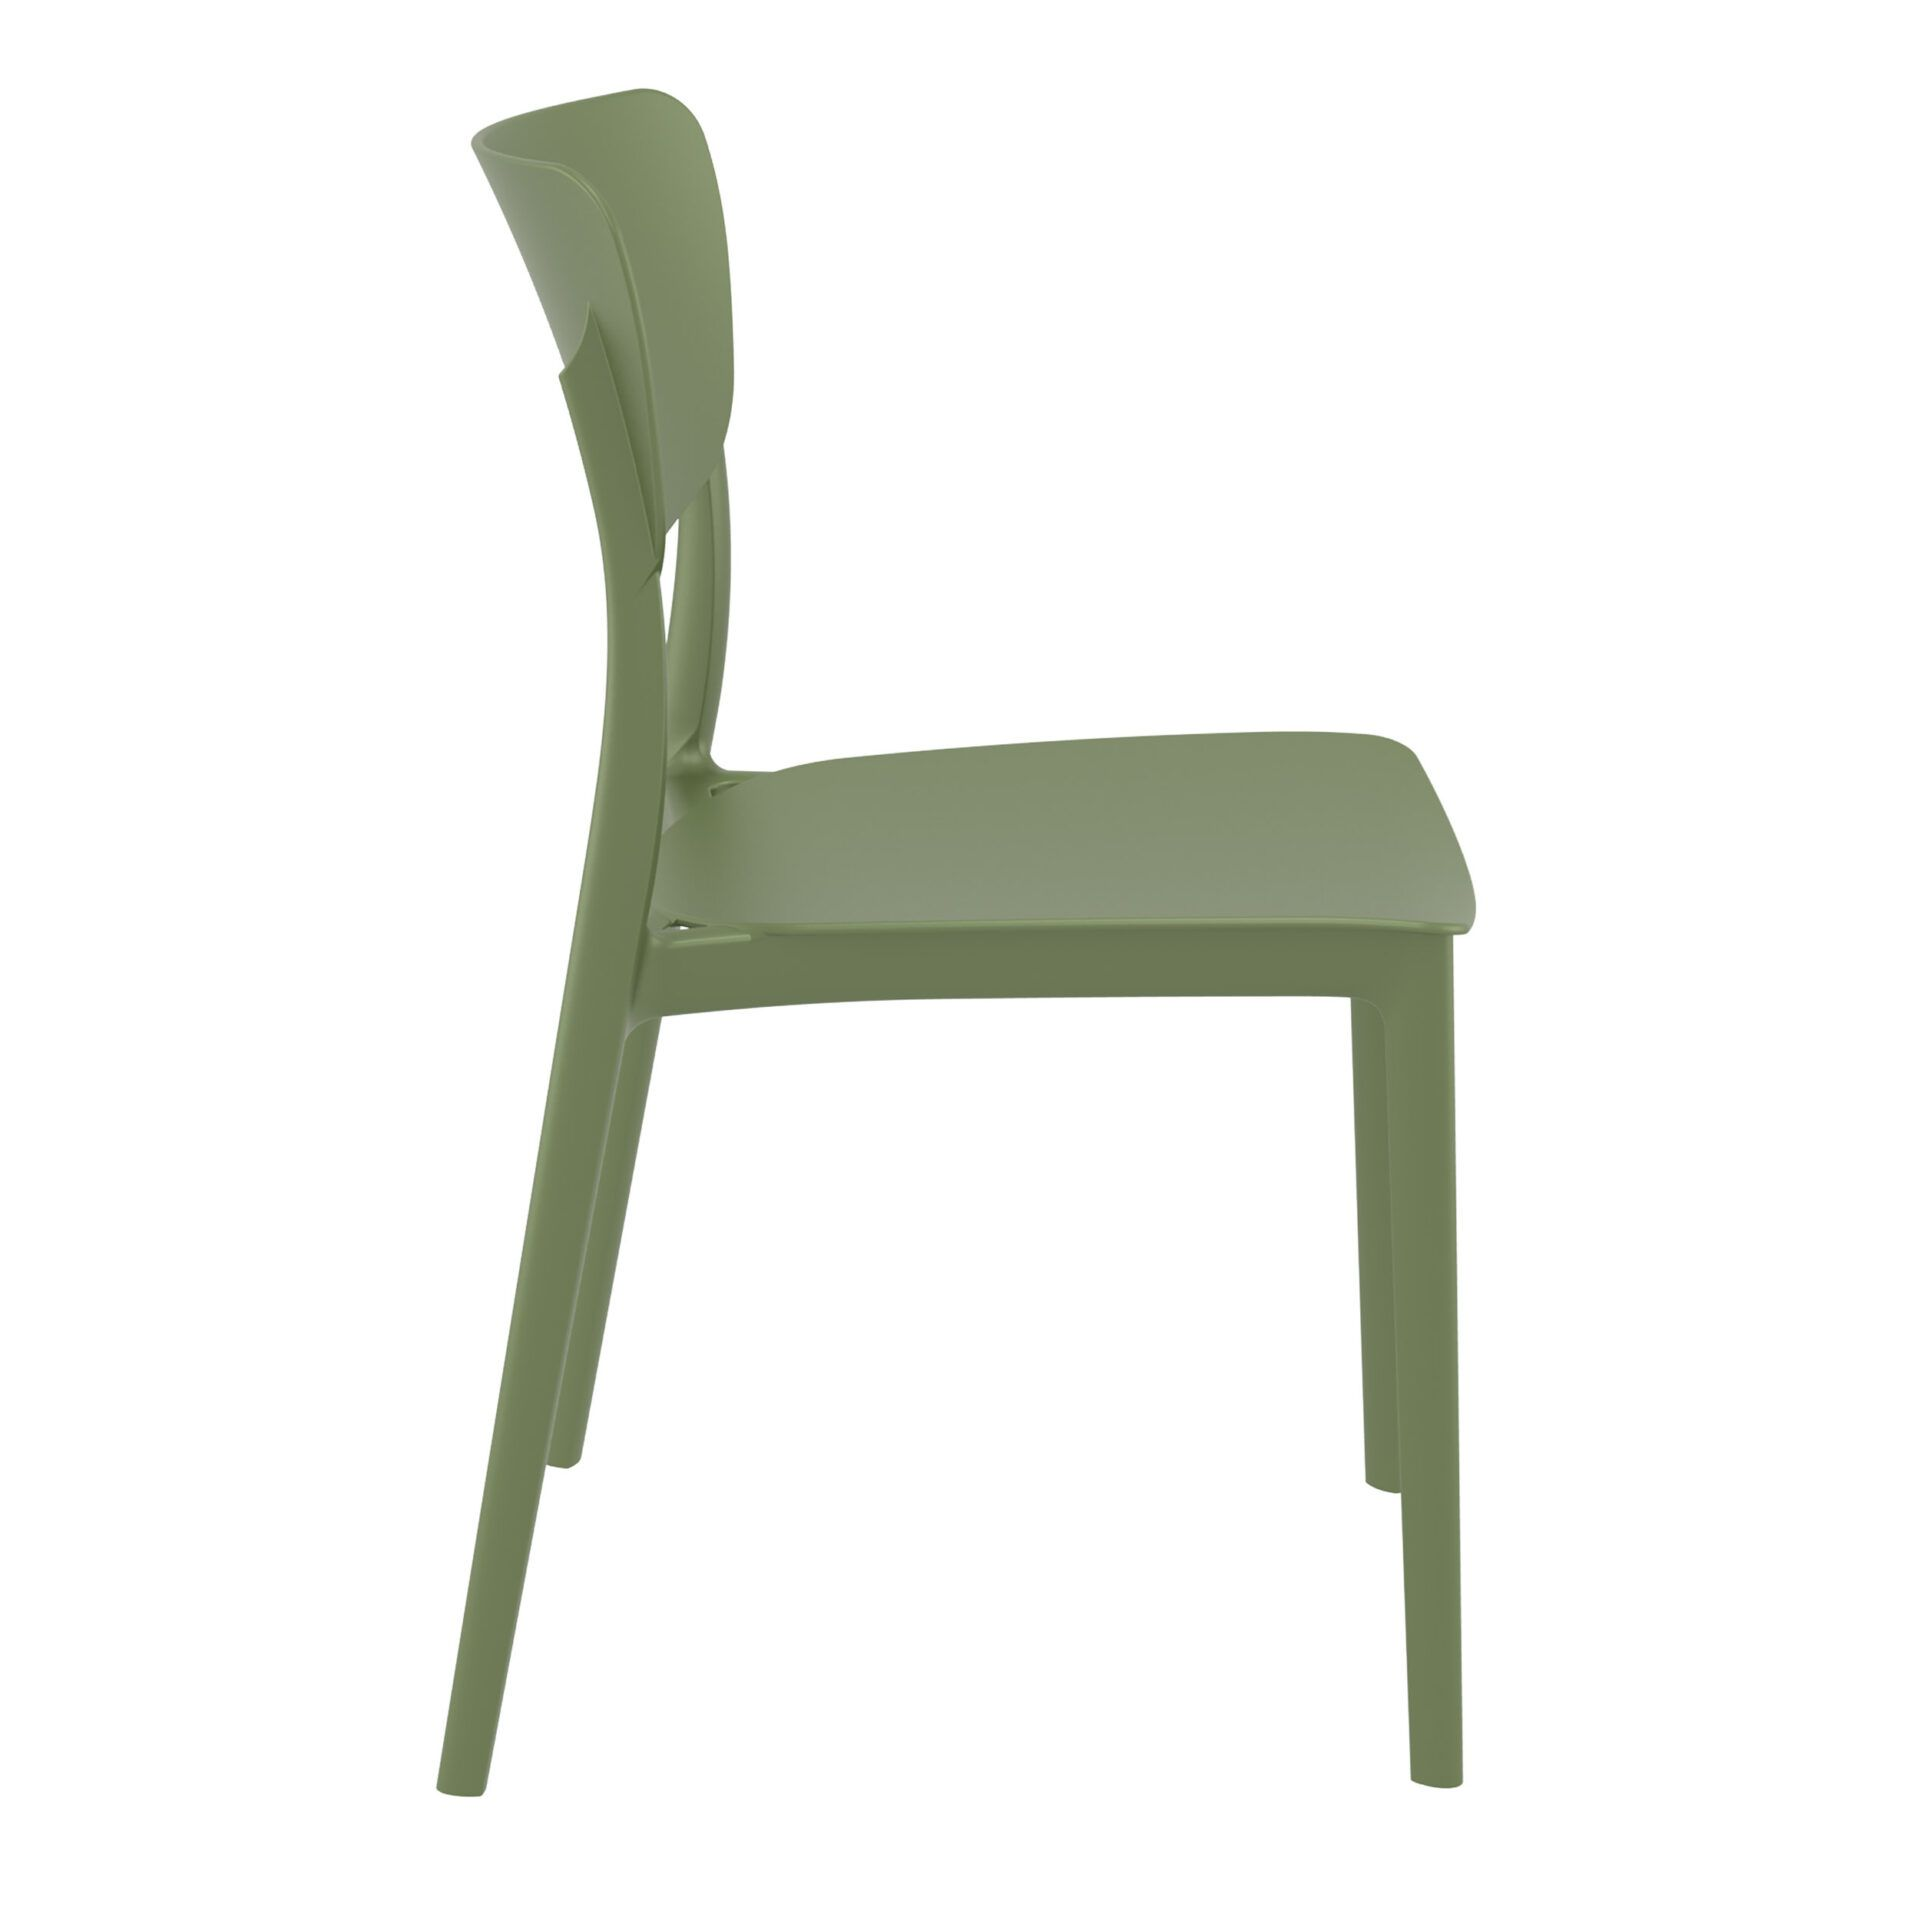 polypropylene outdoor dining monna chair olive green side